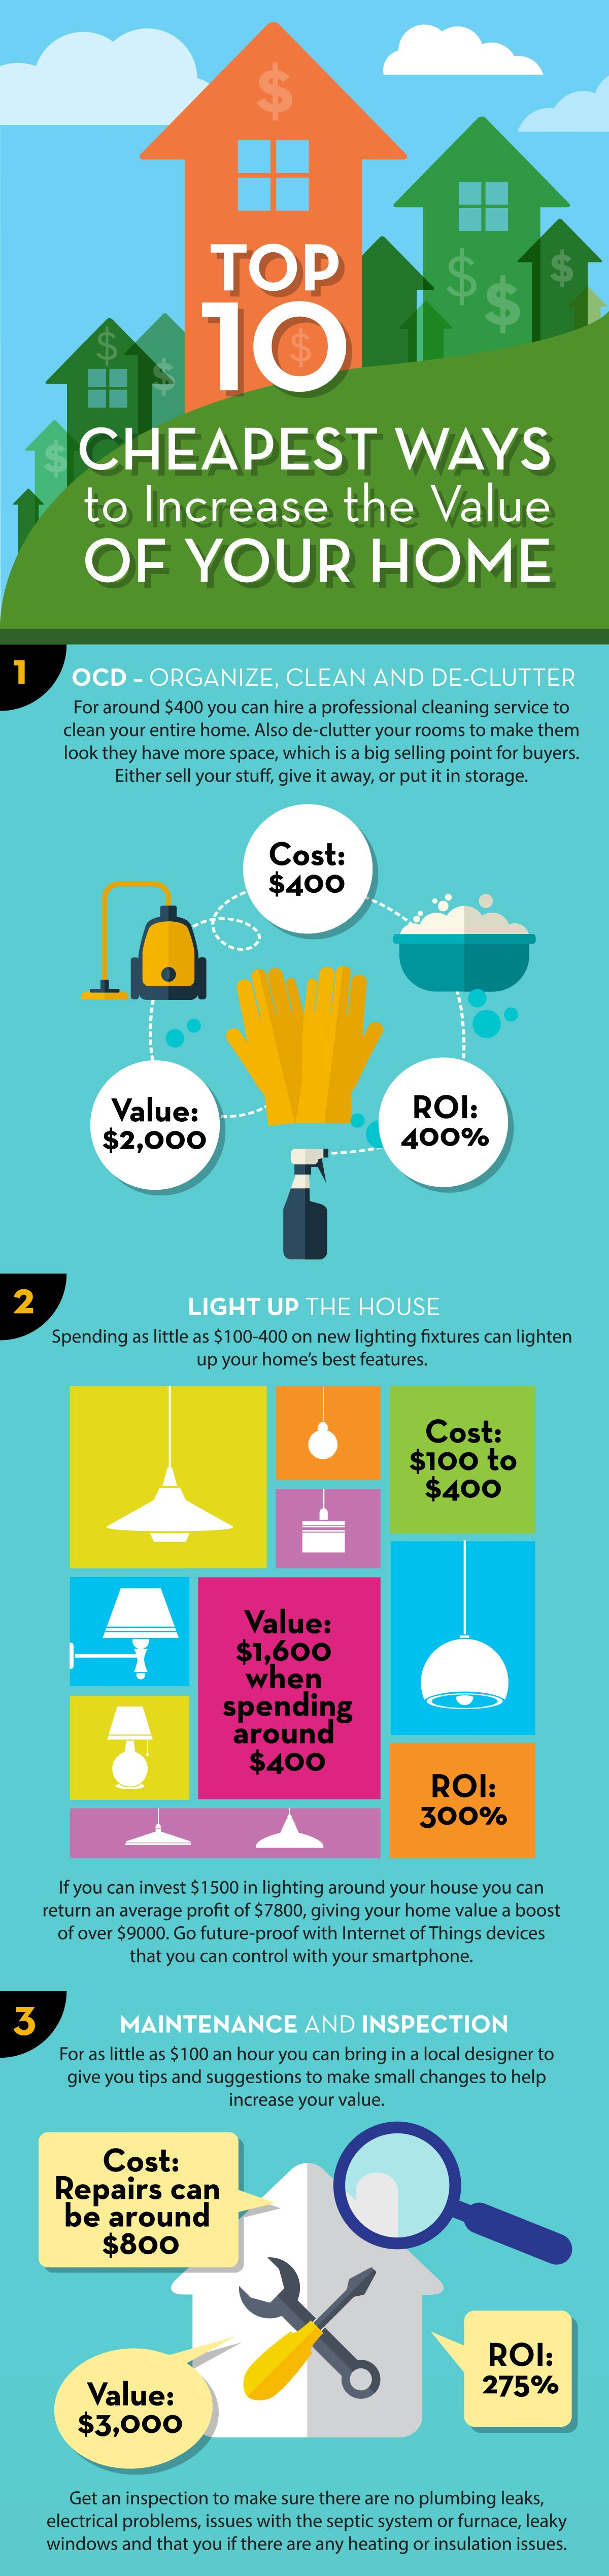 Cost Effective Ways To Add Value Your Home